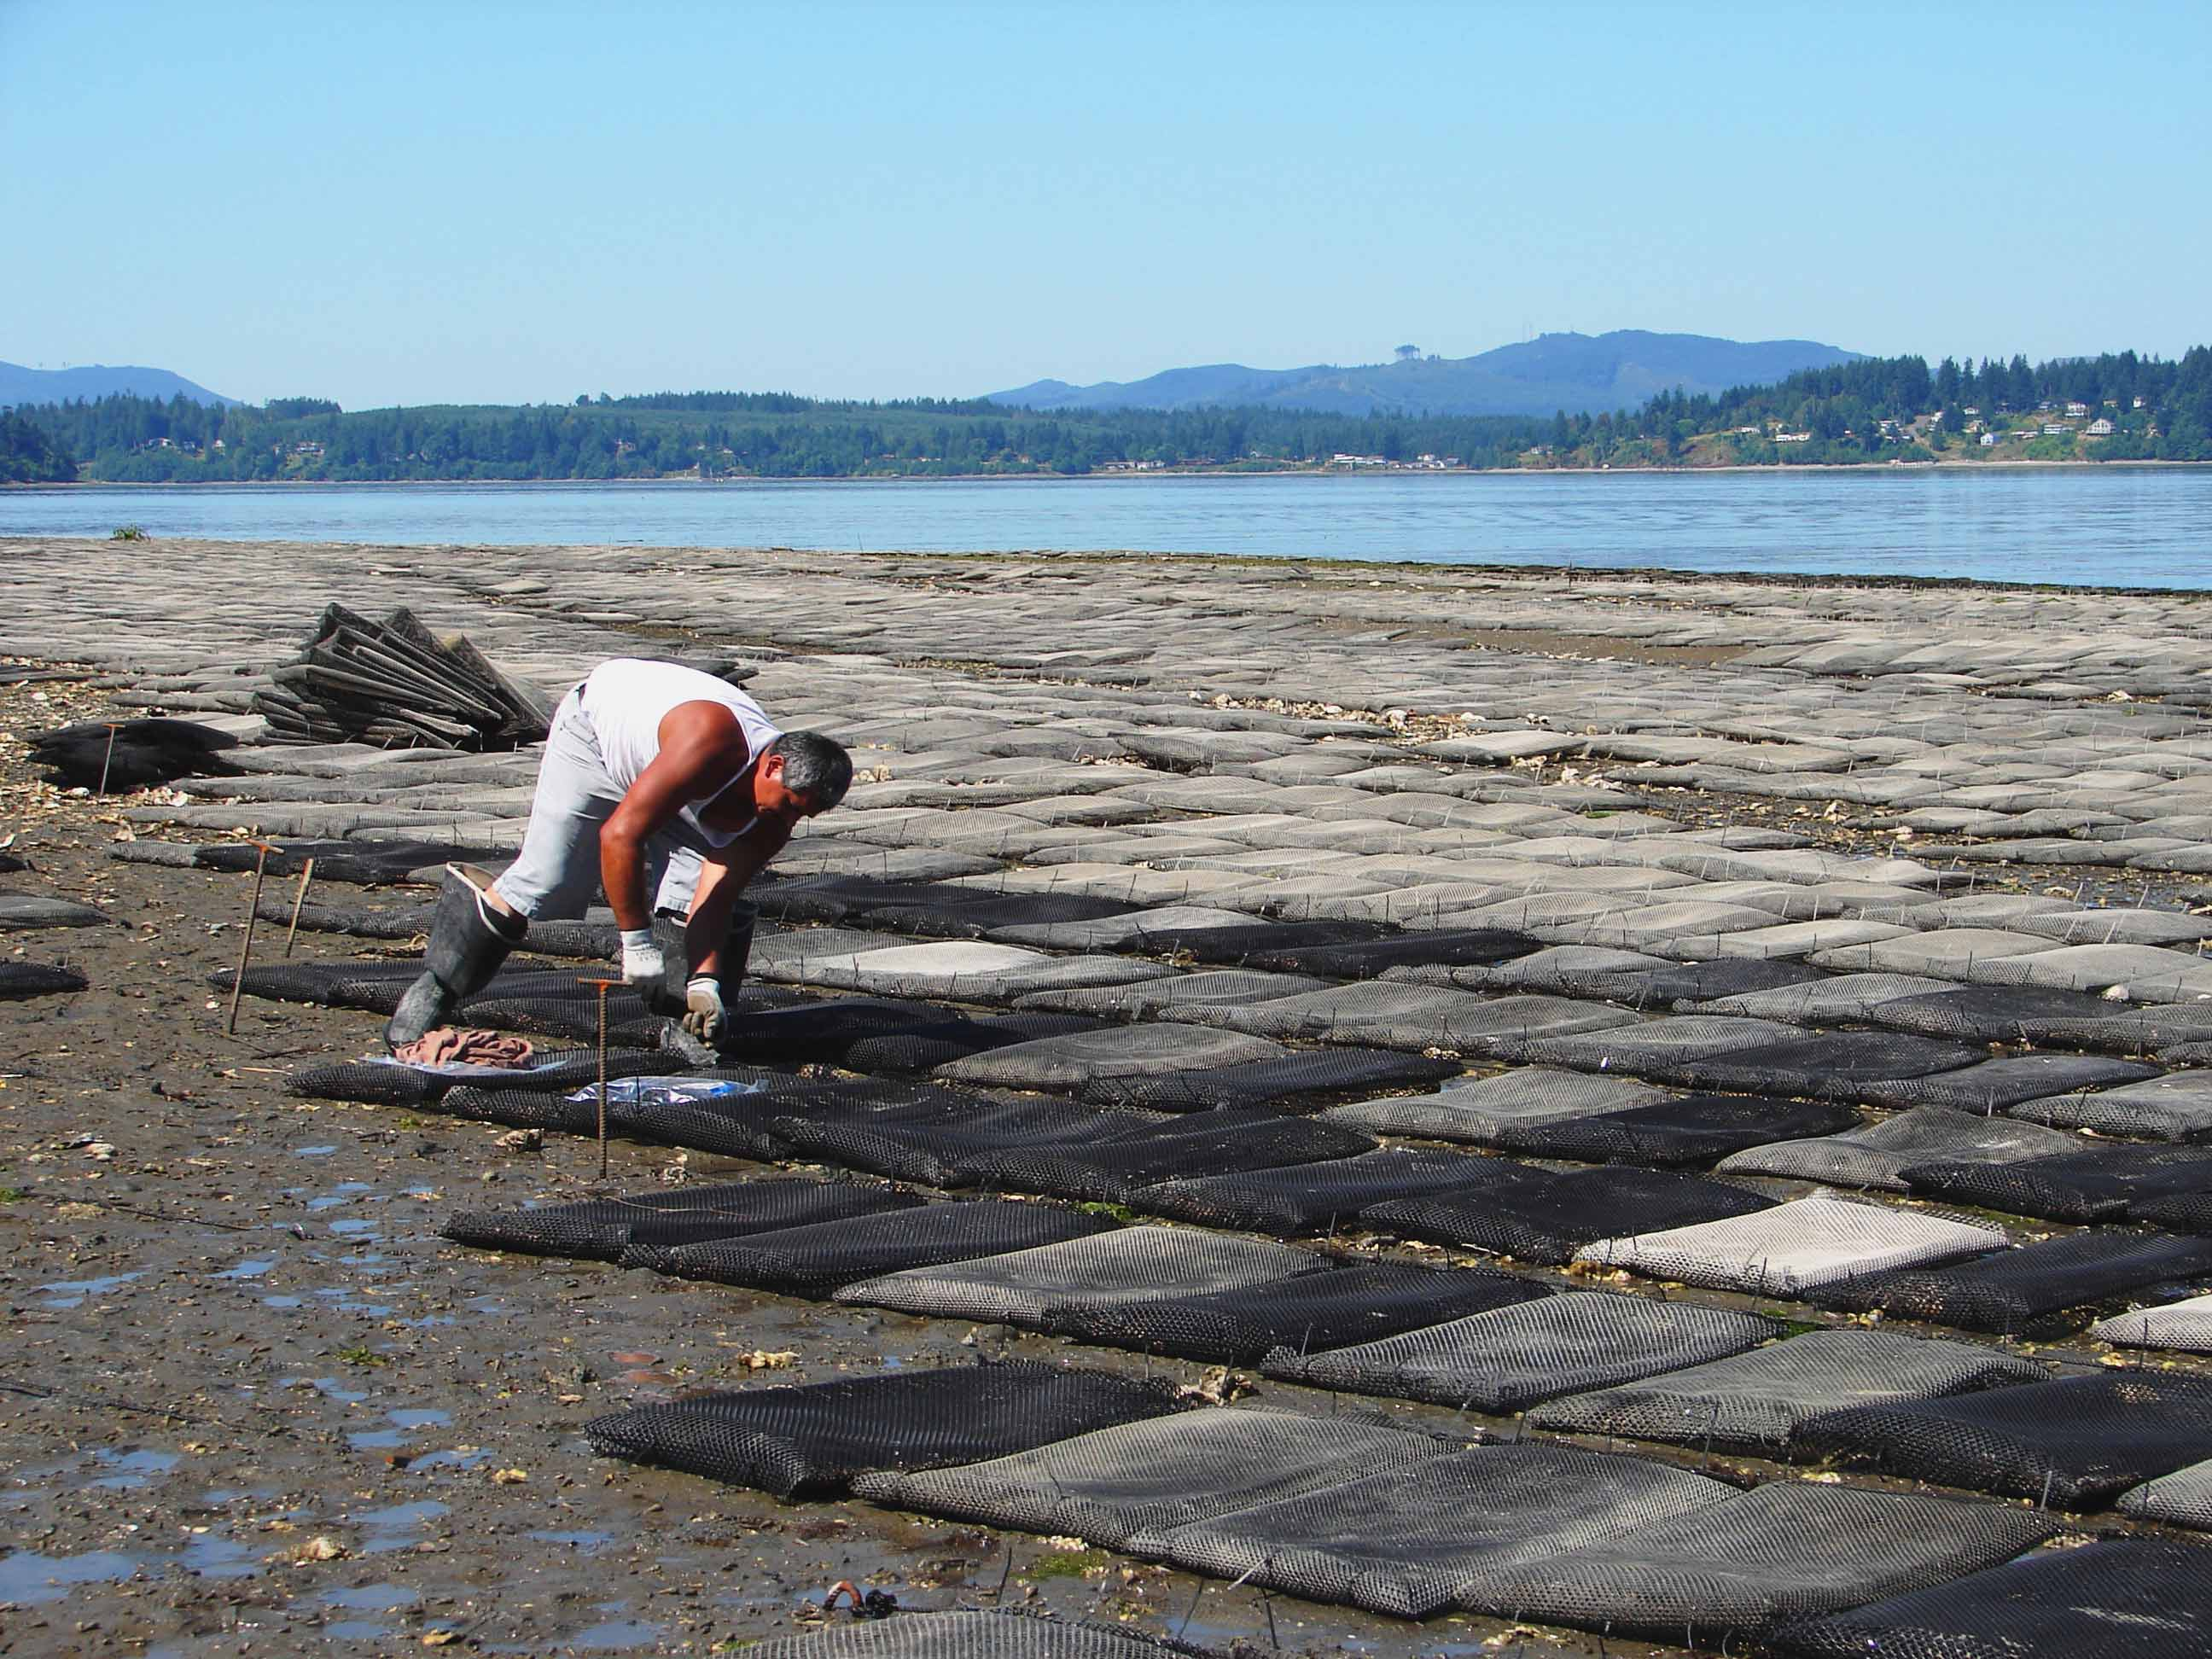 In the Pacific Northwest, the shellfish industry injects an estimated $270 million a year into the region's economy, bringing jobs to over 3,200 people, primarily in coastal communities.